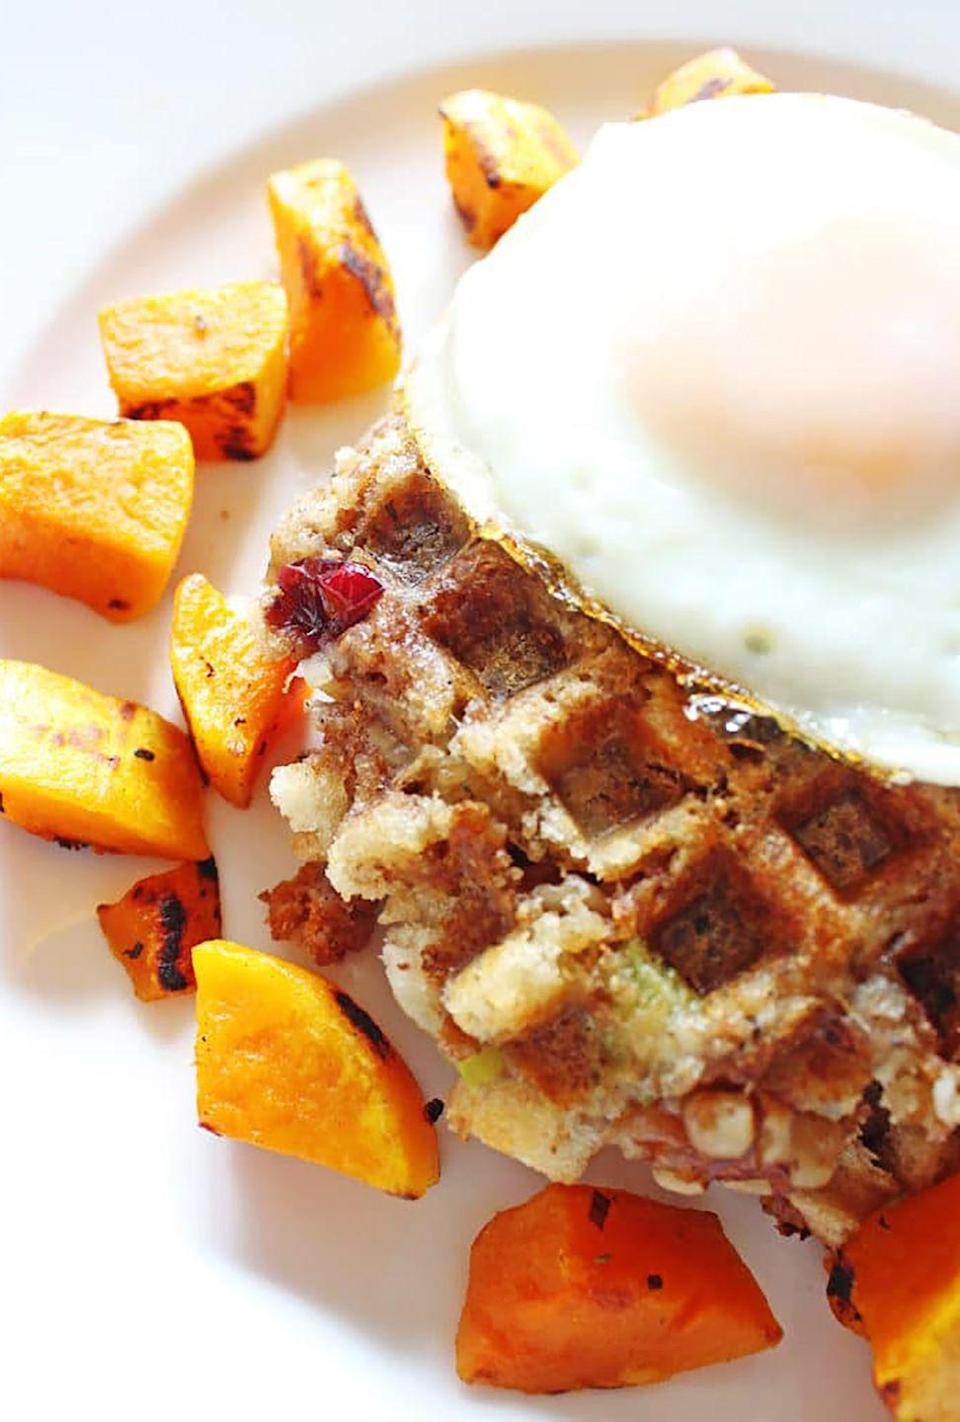 """<p>Waffles made from stuffing might sound a little strange, but trust us: This recipe is oh-so delicious. </p><p><strong>Get the recipe at <a href=""""http://www.ifyougiveablondeakitchen.com/2016/11/02/leftover-thanksgiving-stuffing-waffles/"""" rel=""""nofollow noopener"""" target=""""_blank"""" data-ylk=""""slk:If You Give A Blonde A Kitchen"""" class=""""link rapid-noclick-resp"""">If You Give A Blonde A Kitchen</a>. </strong></p>"""